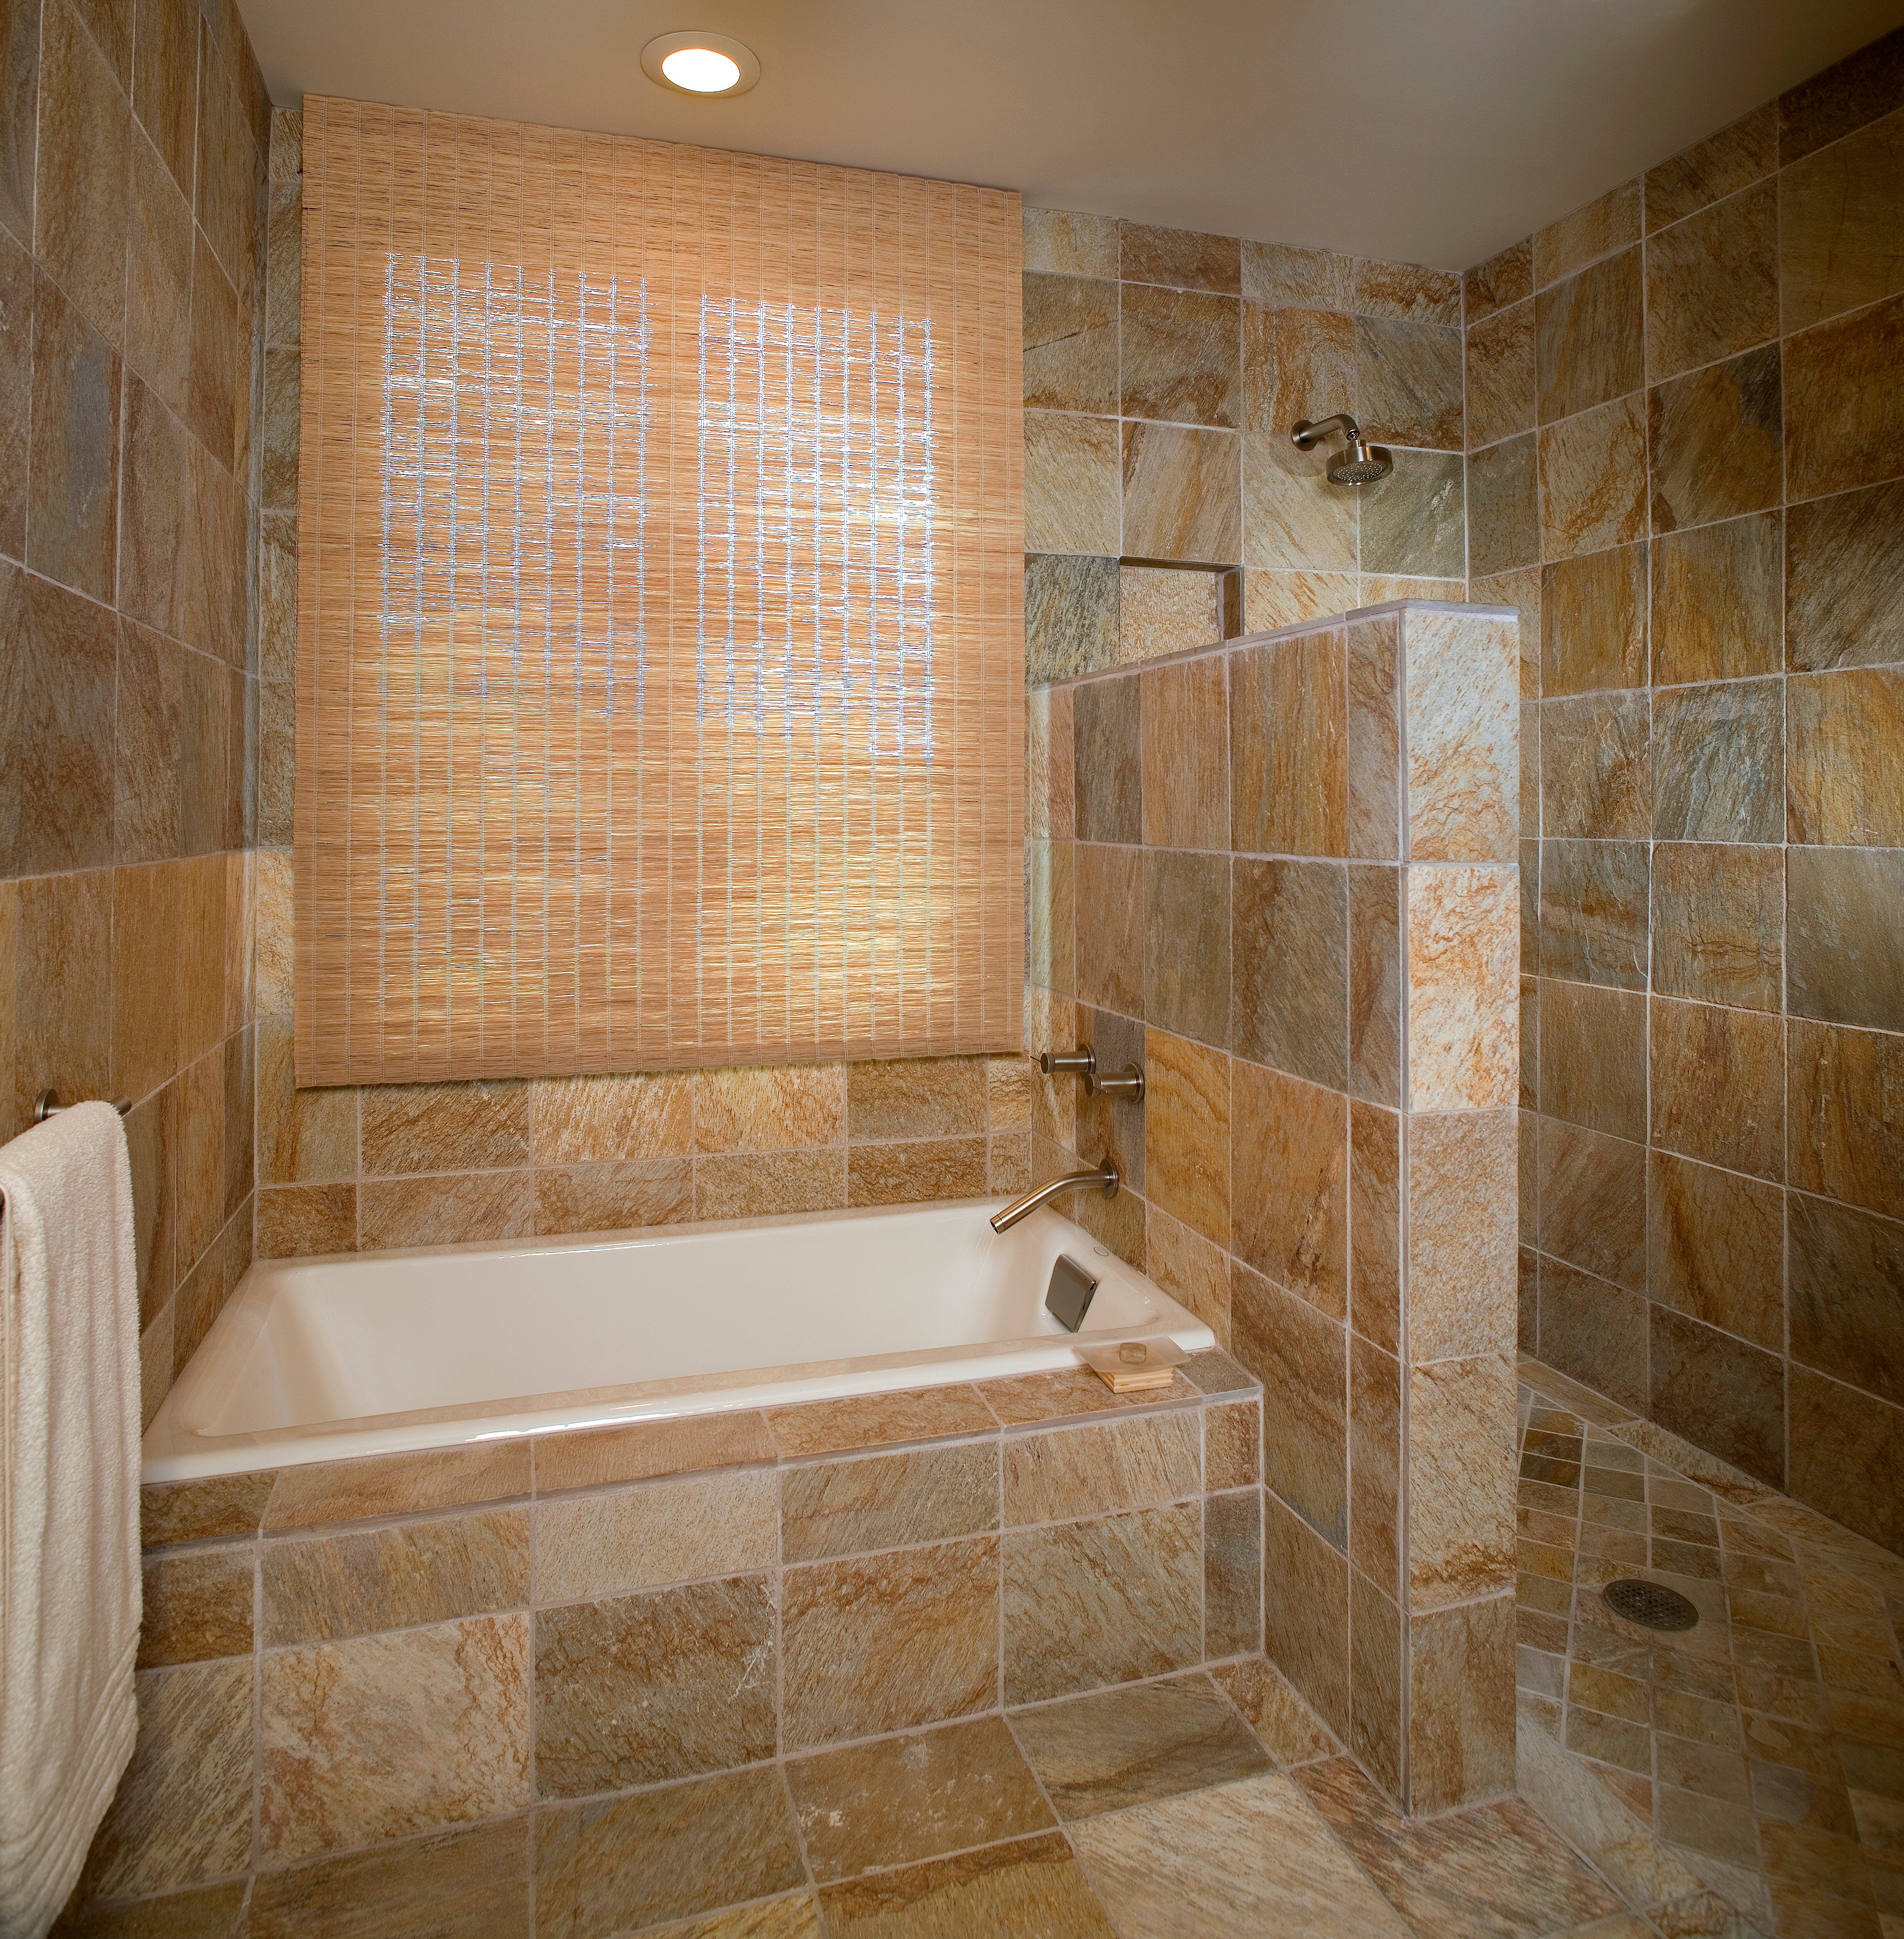 Ideas On Bathroom Remodeling Beauteous Where Does Your Money Go For A Bathroom Remodel  Homeadvisor Design Inspiration